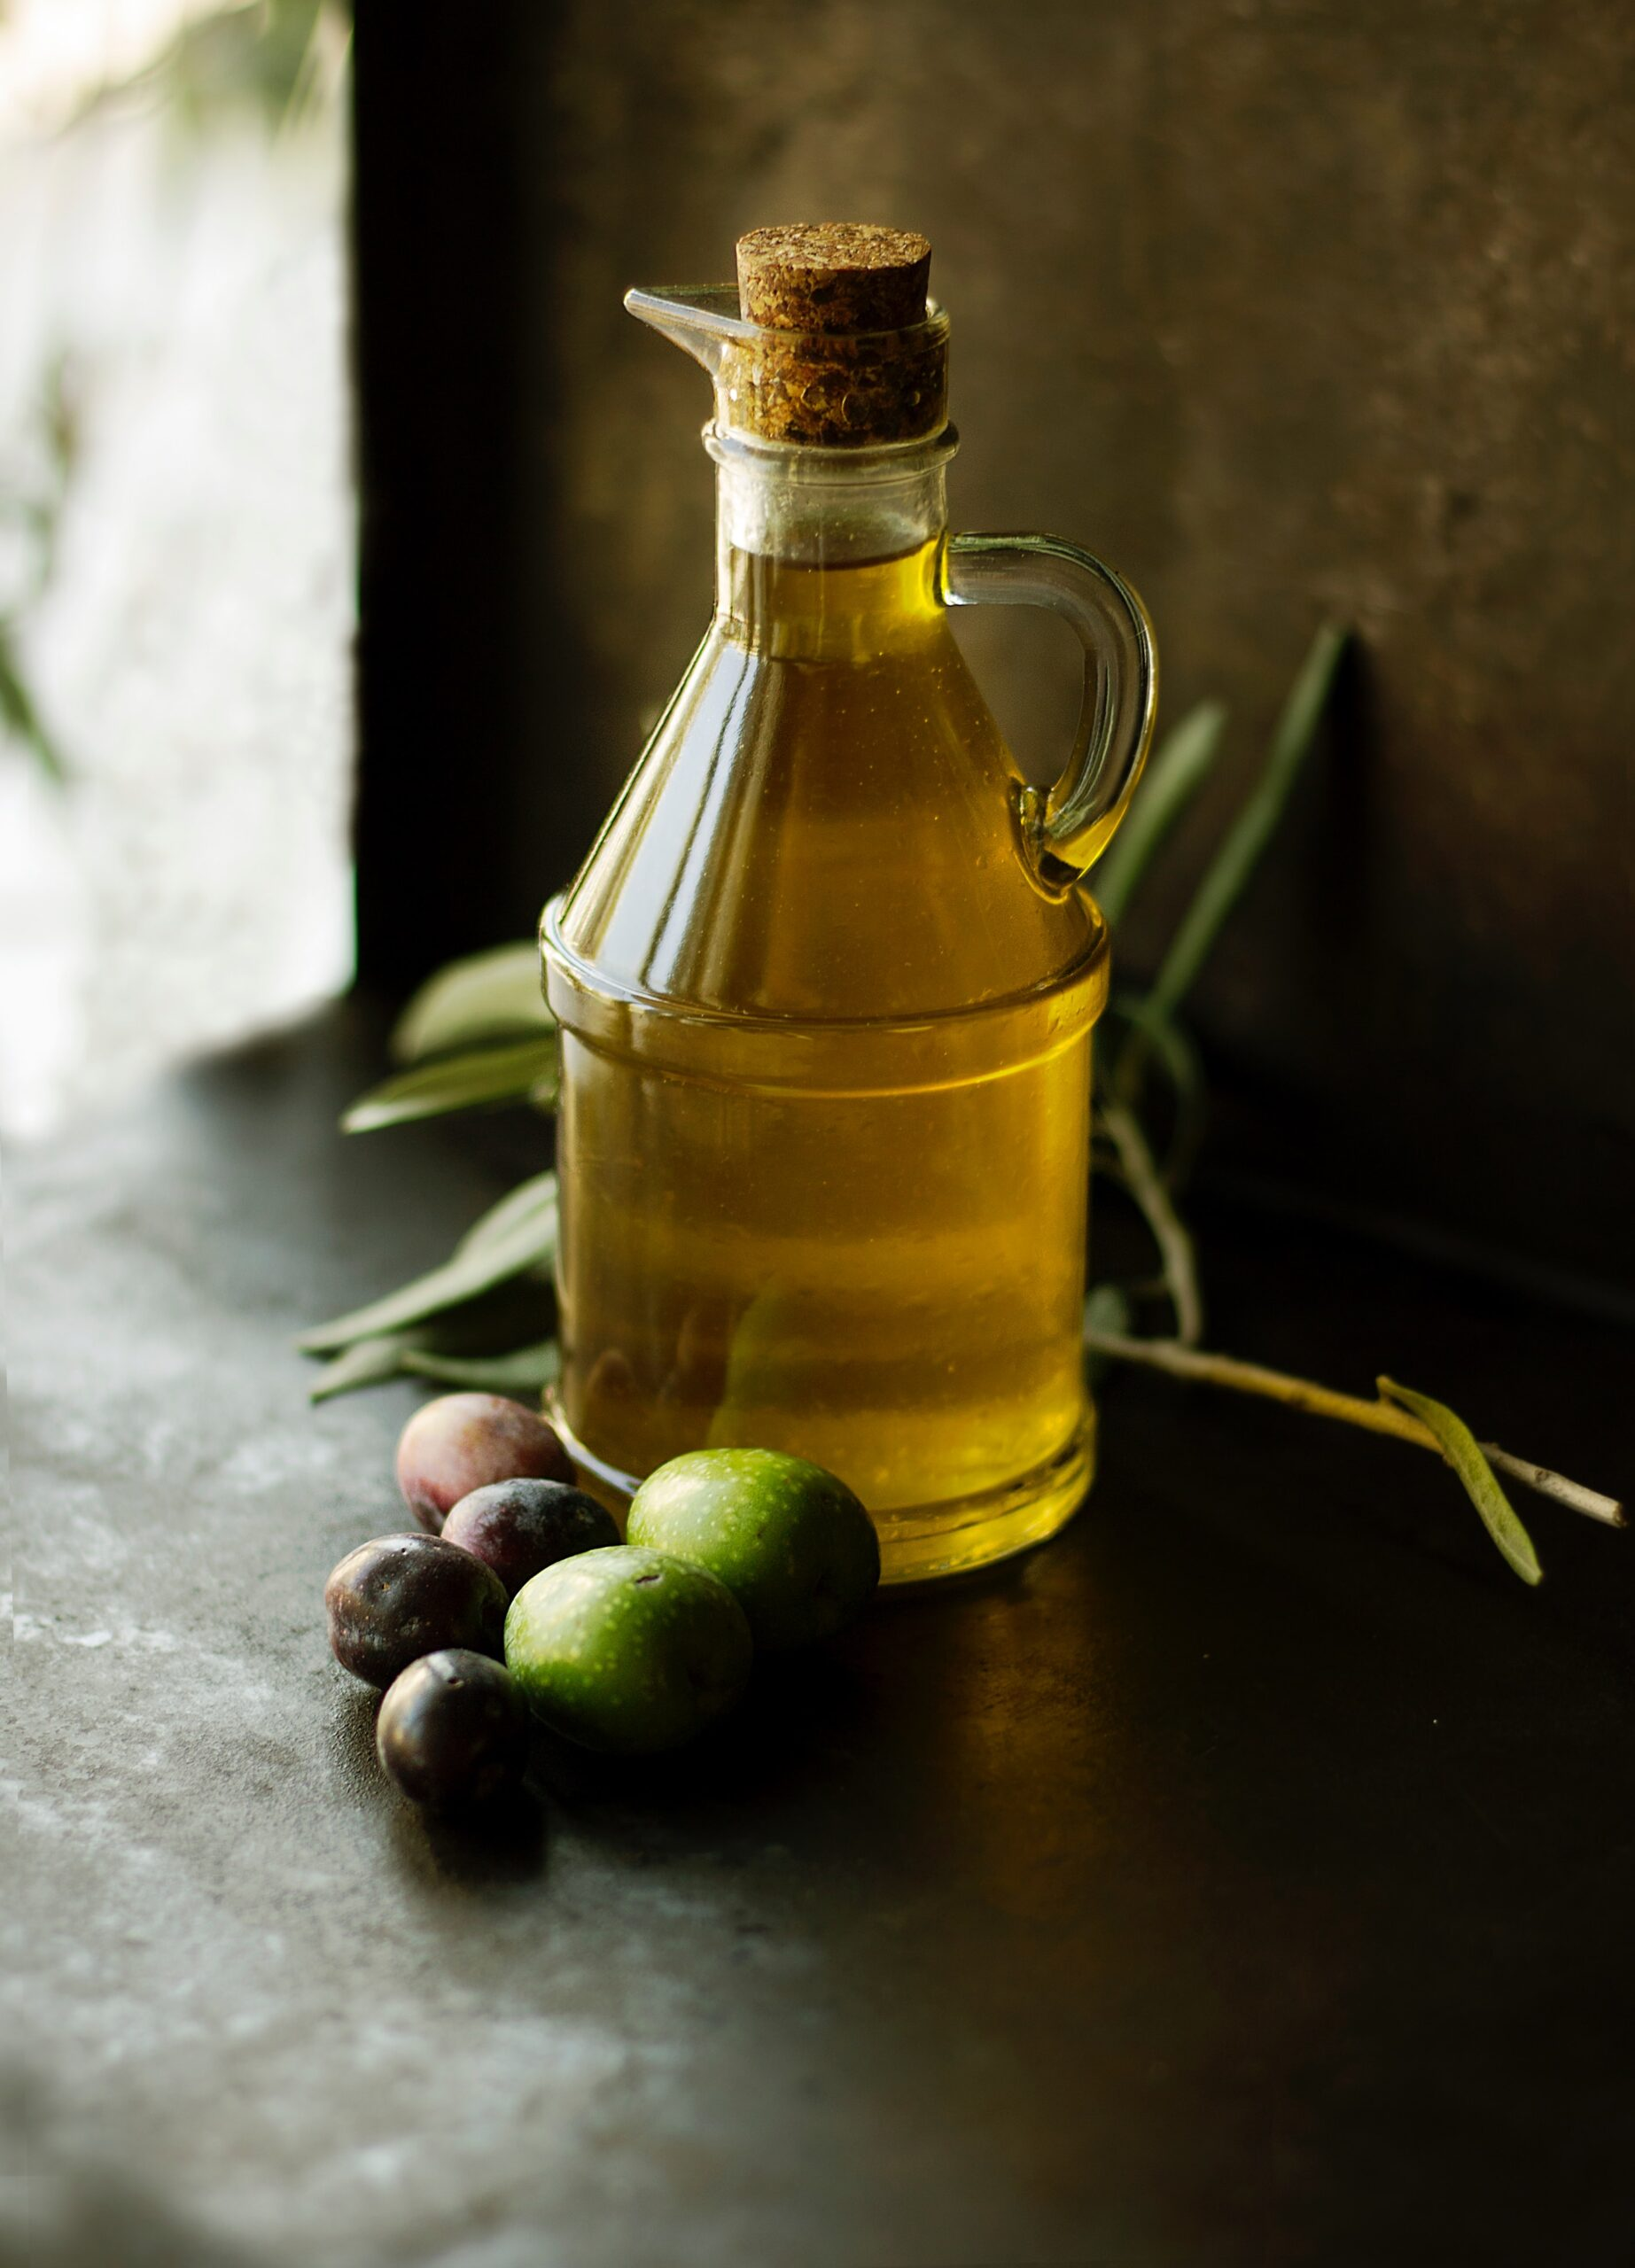 Day 22: High Polyphenol Extra Virgin Olive Oil, June 2021